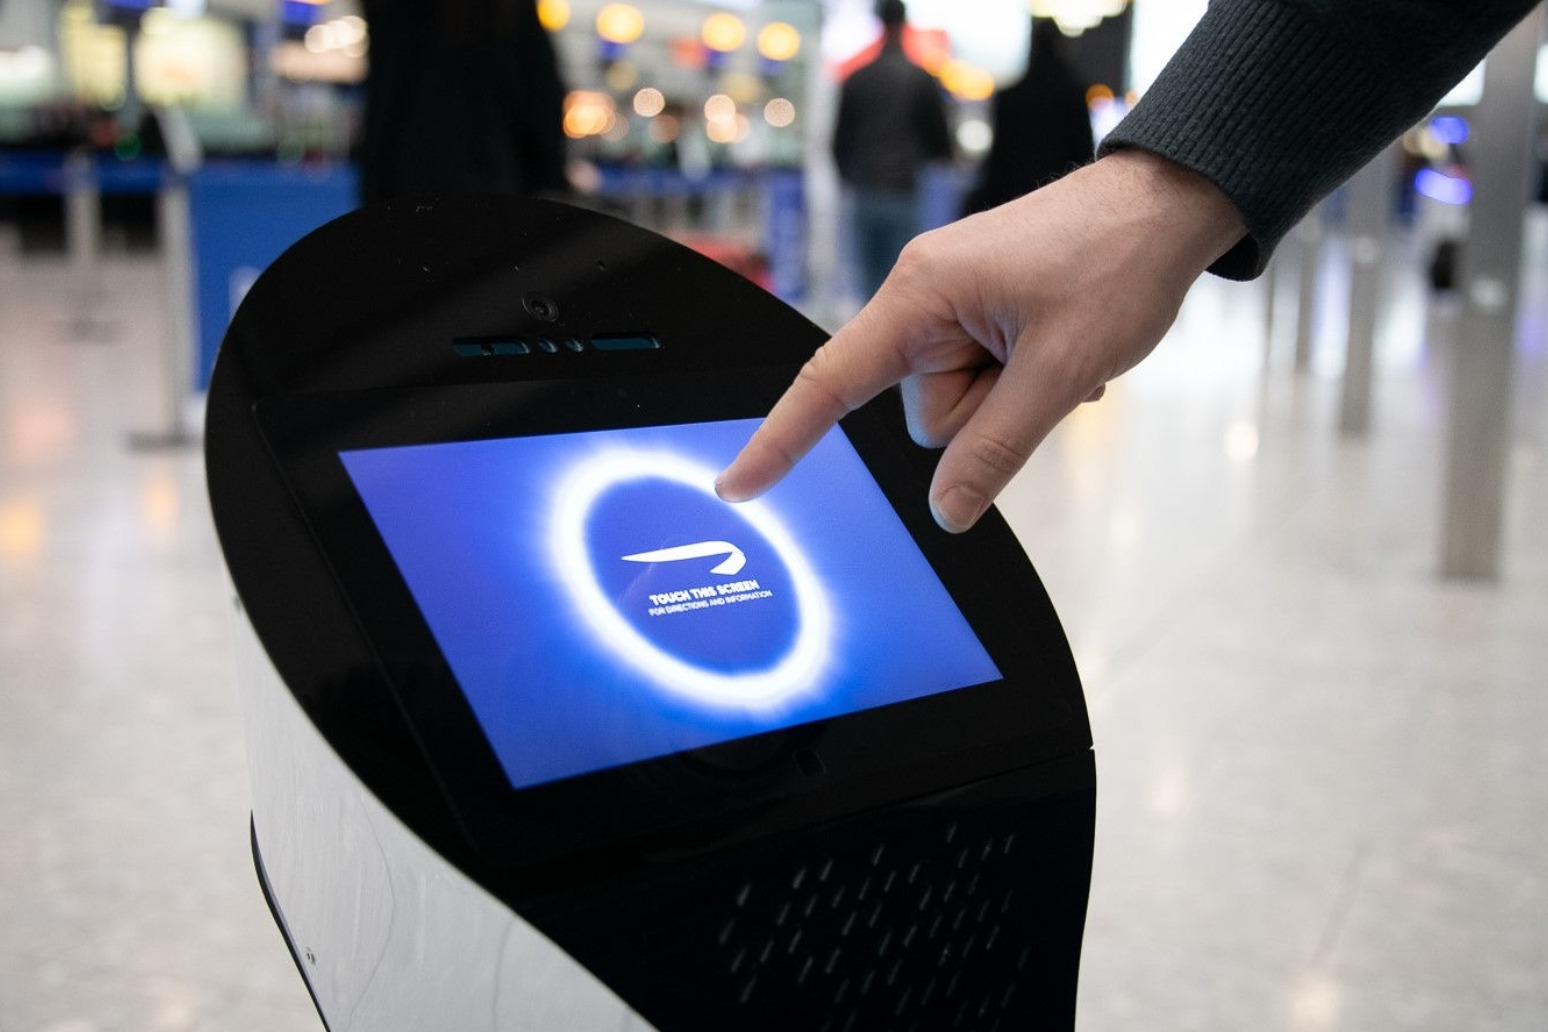 ROBOTS TO HELP BA PASSENGERS FIND THEIR WAY AROUND HEATHROW